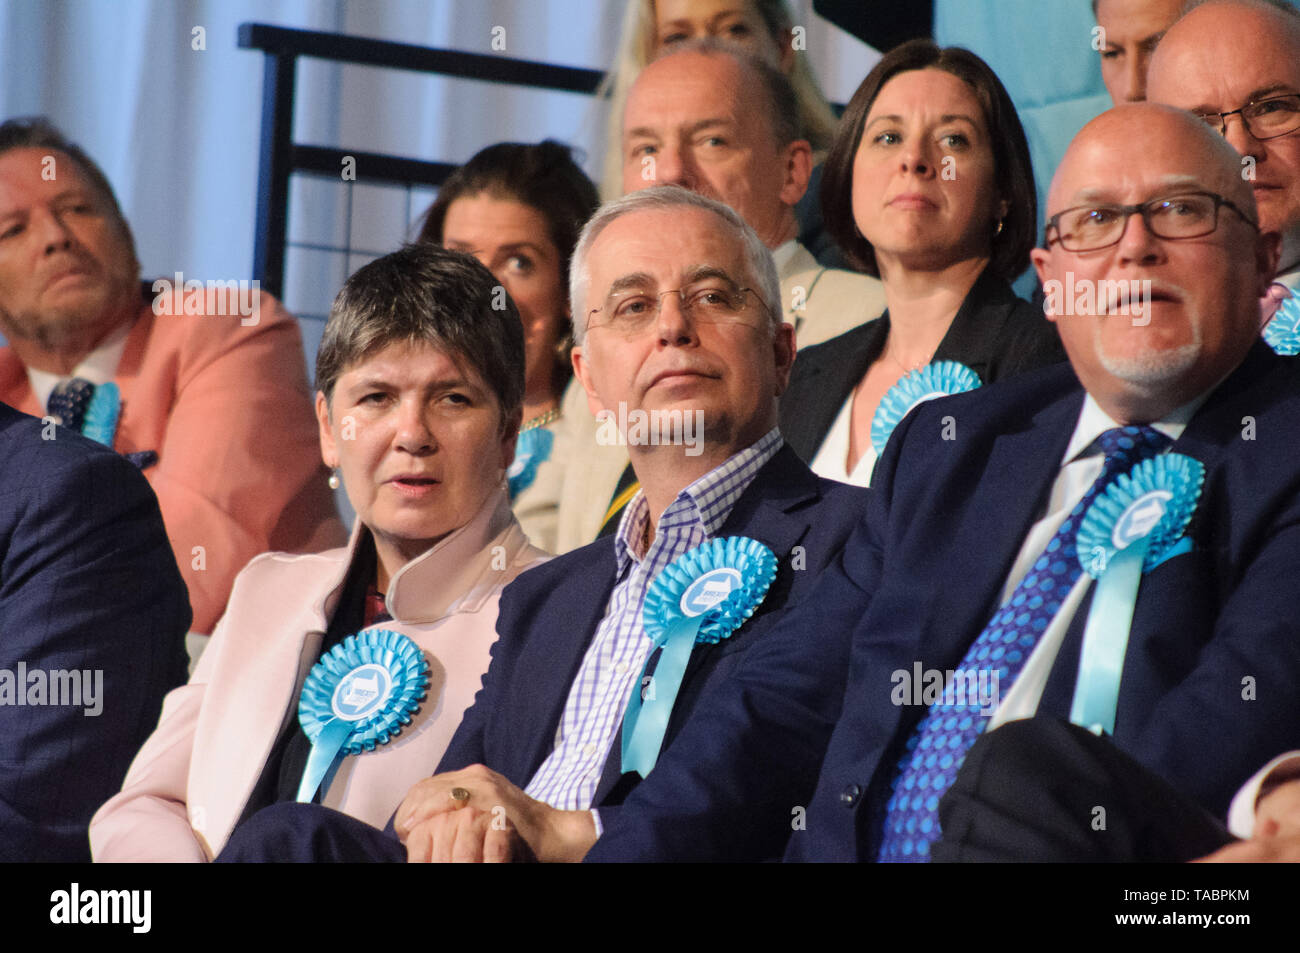 Brexit Party Rally at London Olympia on 21 May 2019 before the European Election Vote on the 23 May - Stock Image